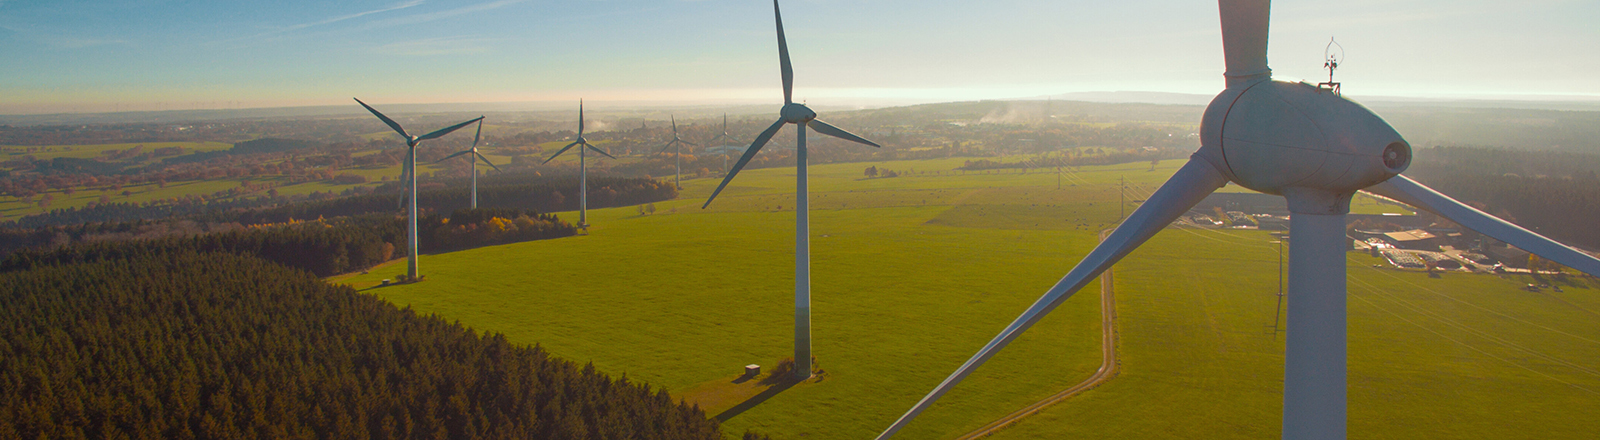 Wind turbines and agricultural fields on a summer day